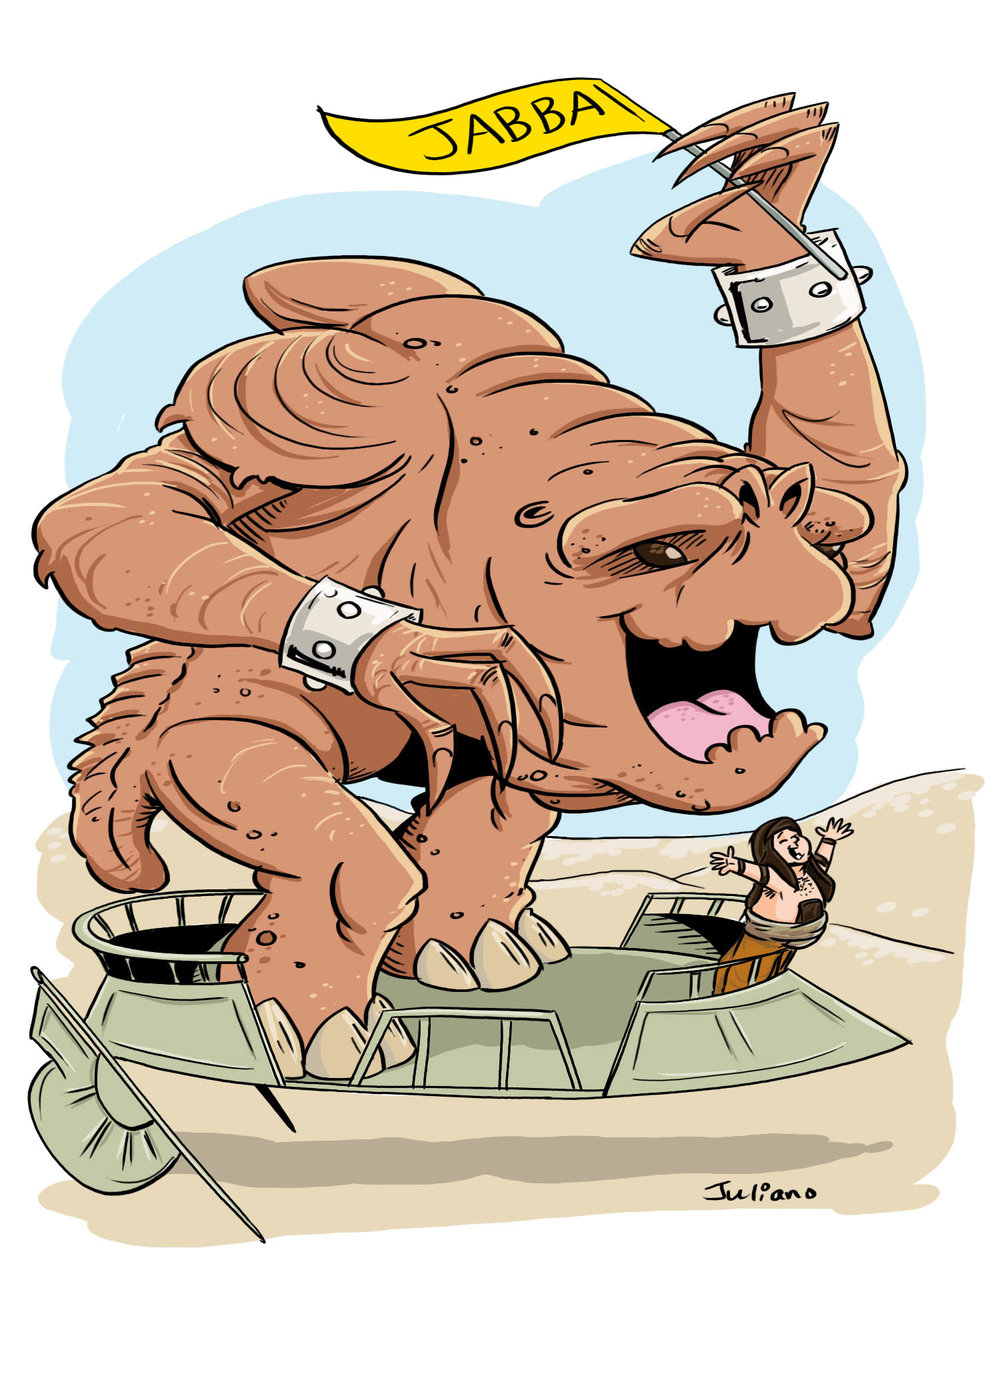 rancor monster.jpg